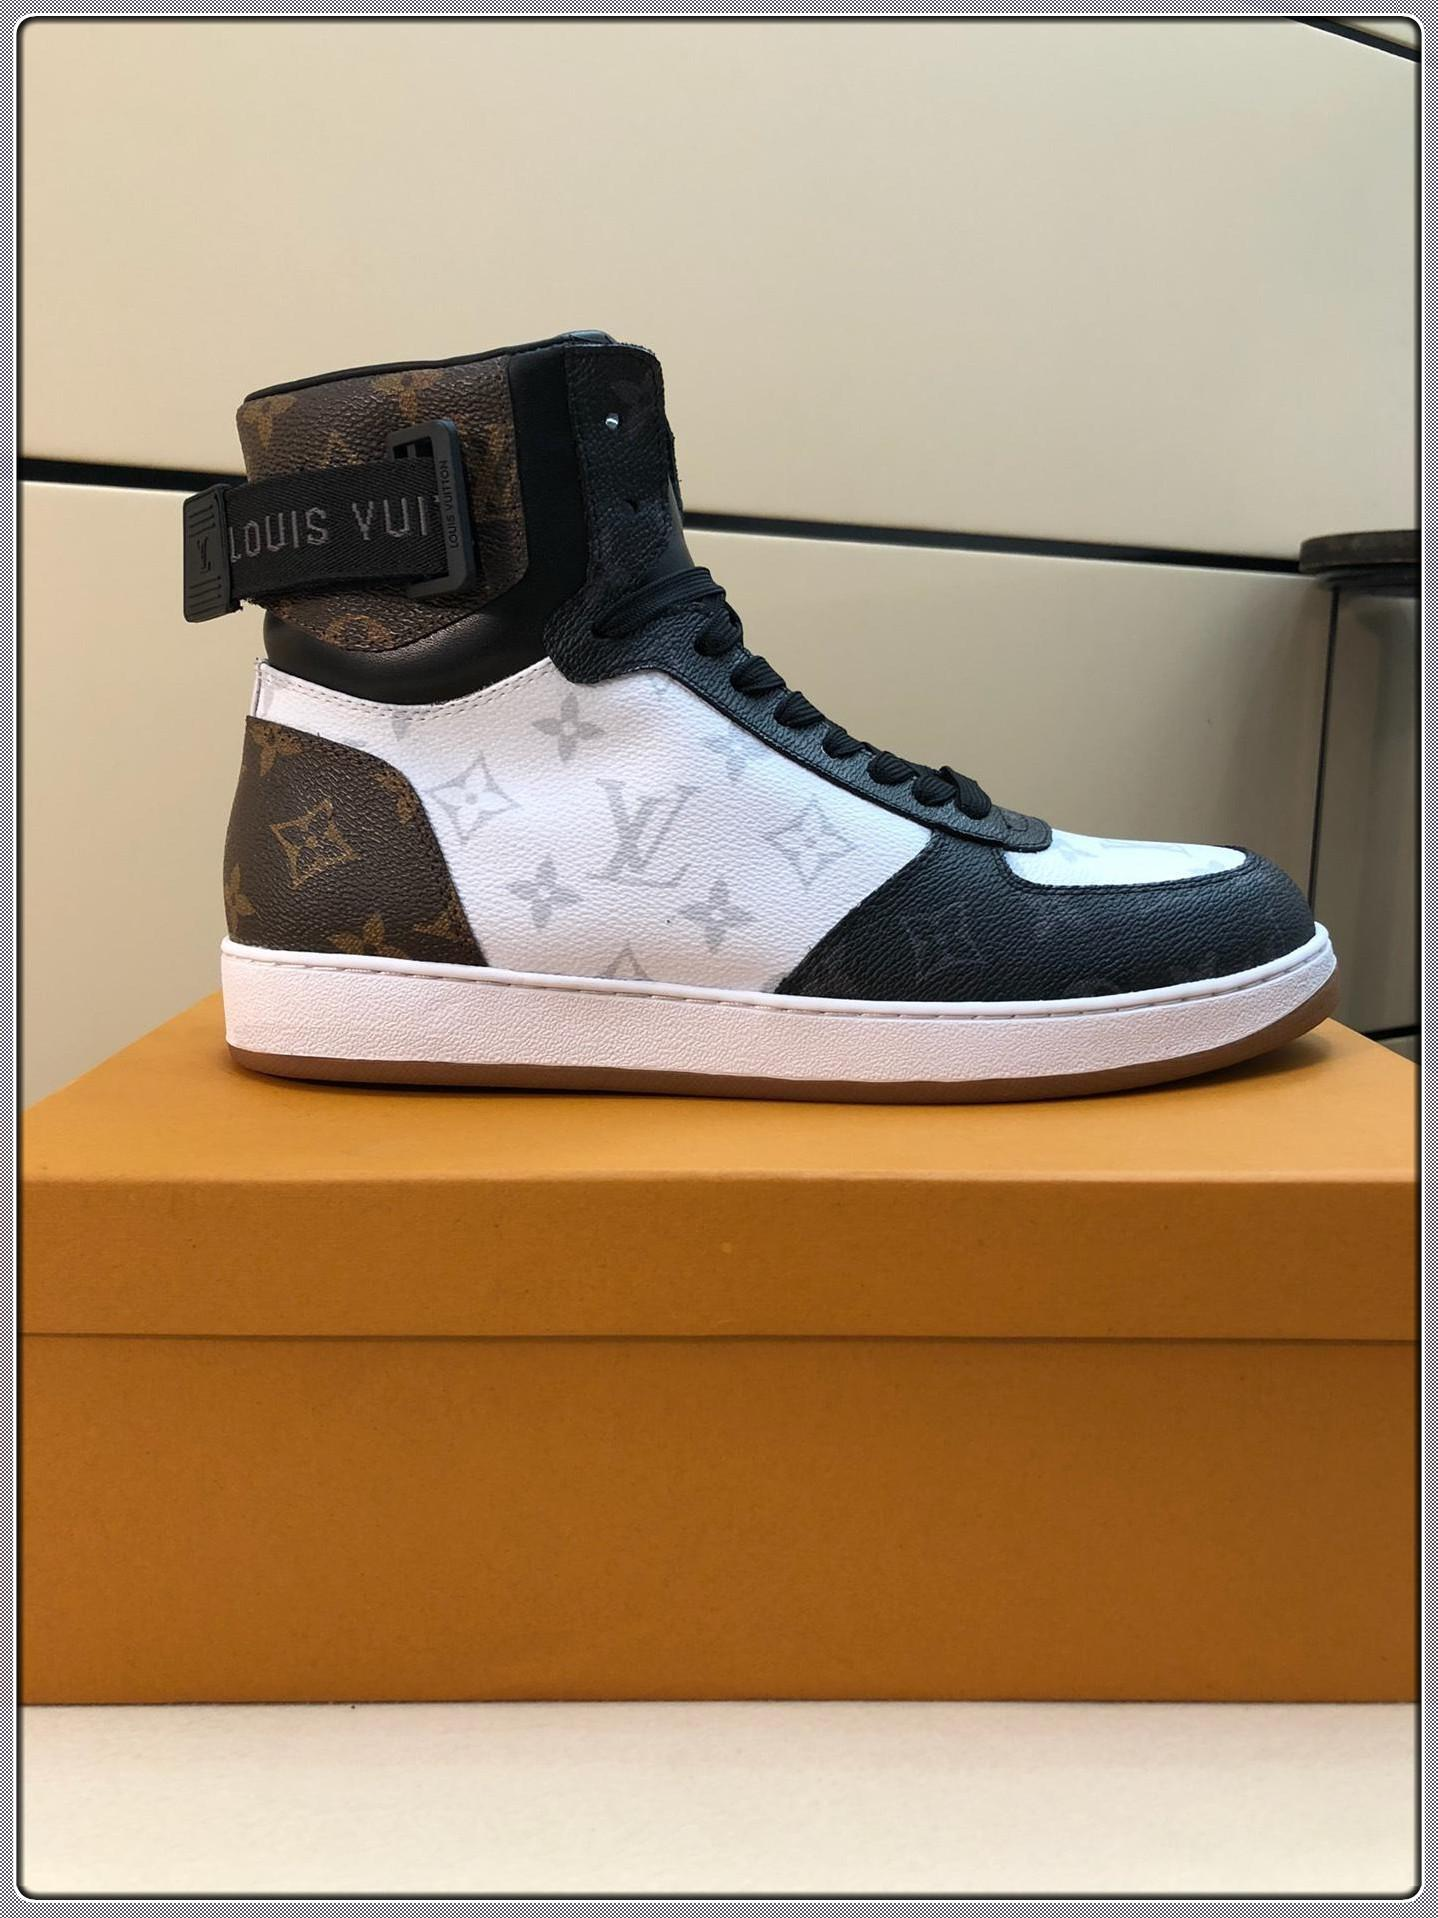 High-top sports men's shoes designer leather casual brand sneakers fashion luxury men's shoes free shipping size 38-45